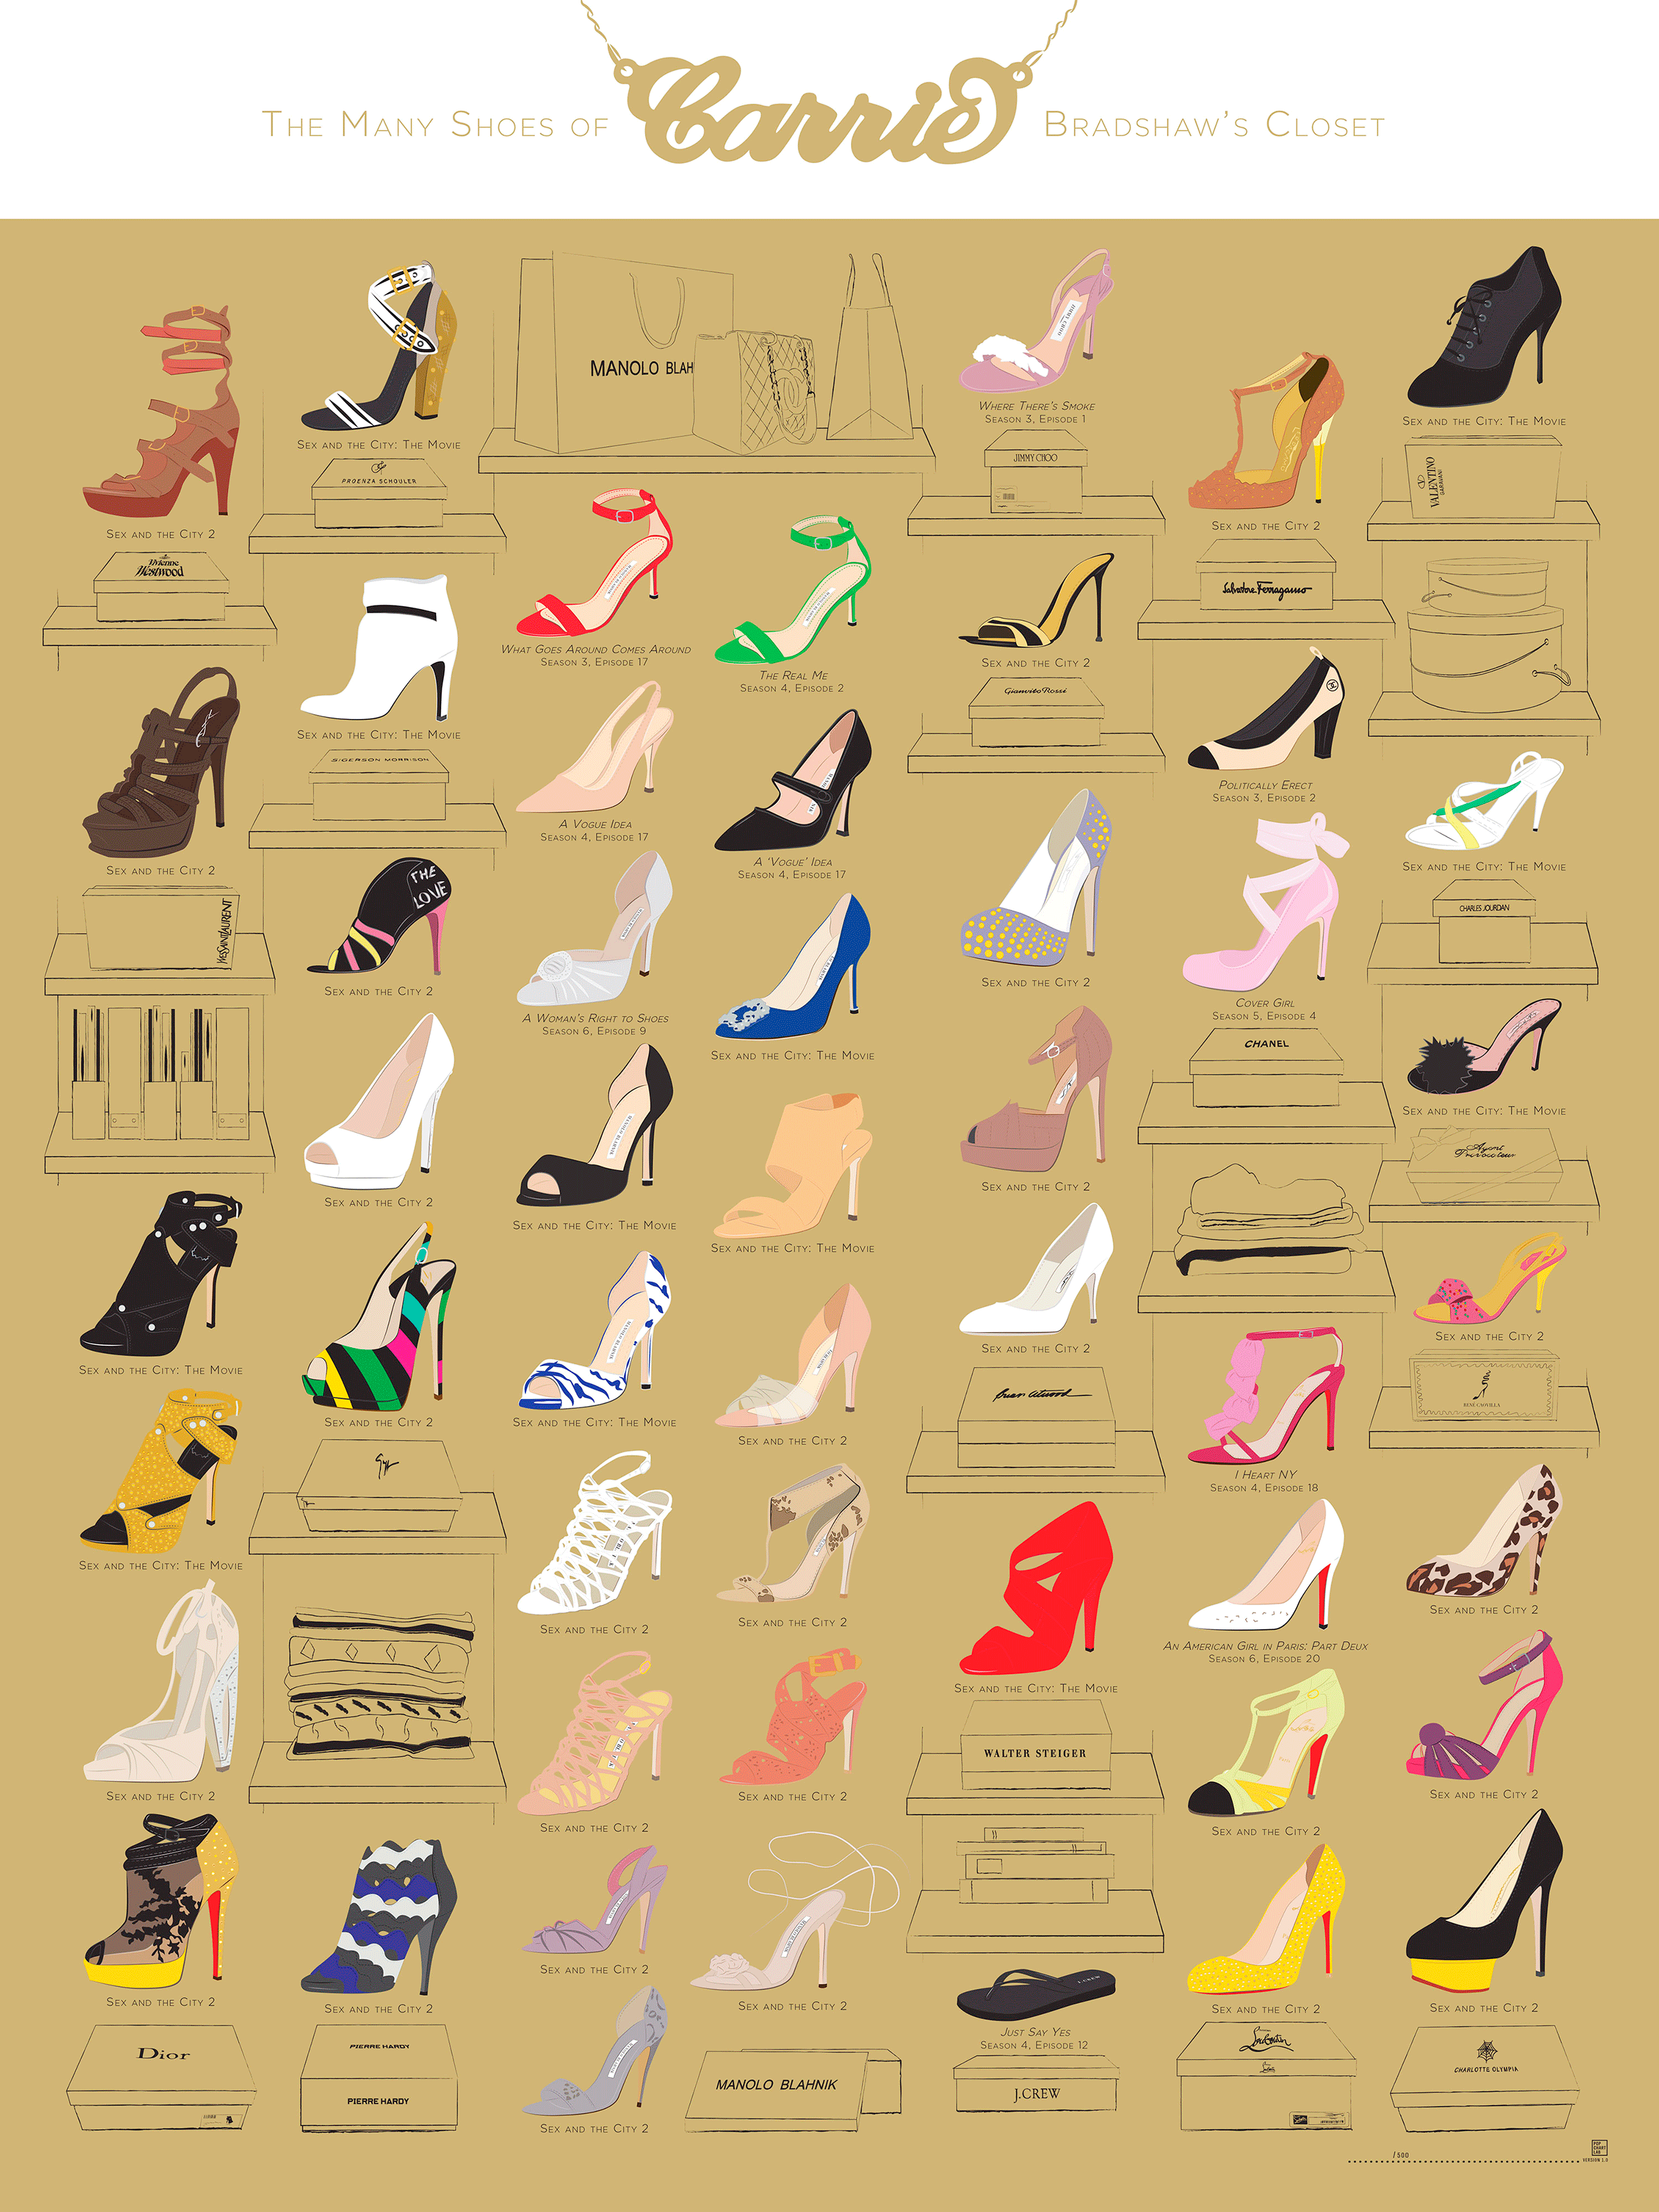 all shoes worn by Carrie Bradshaw